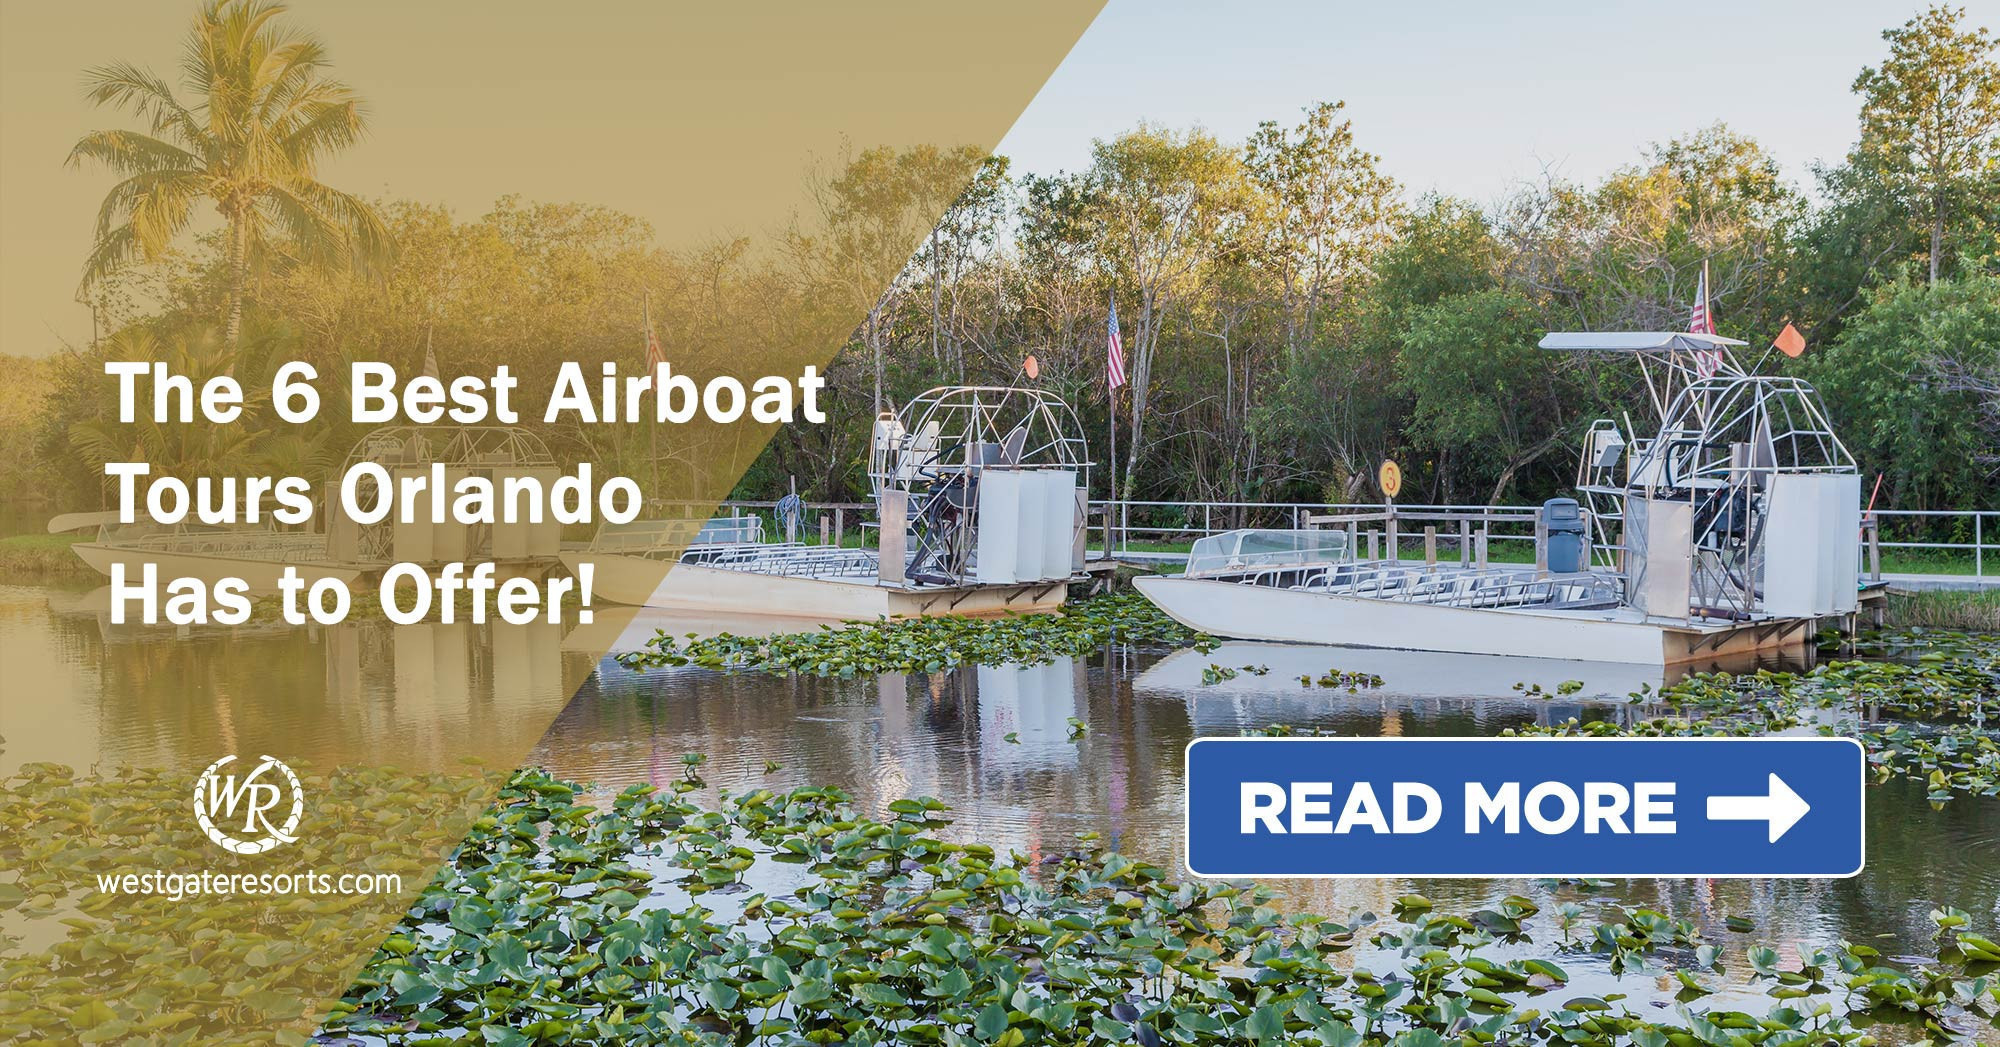 The 6 Best Airboat Tours Orlando Has to Offer!